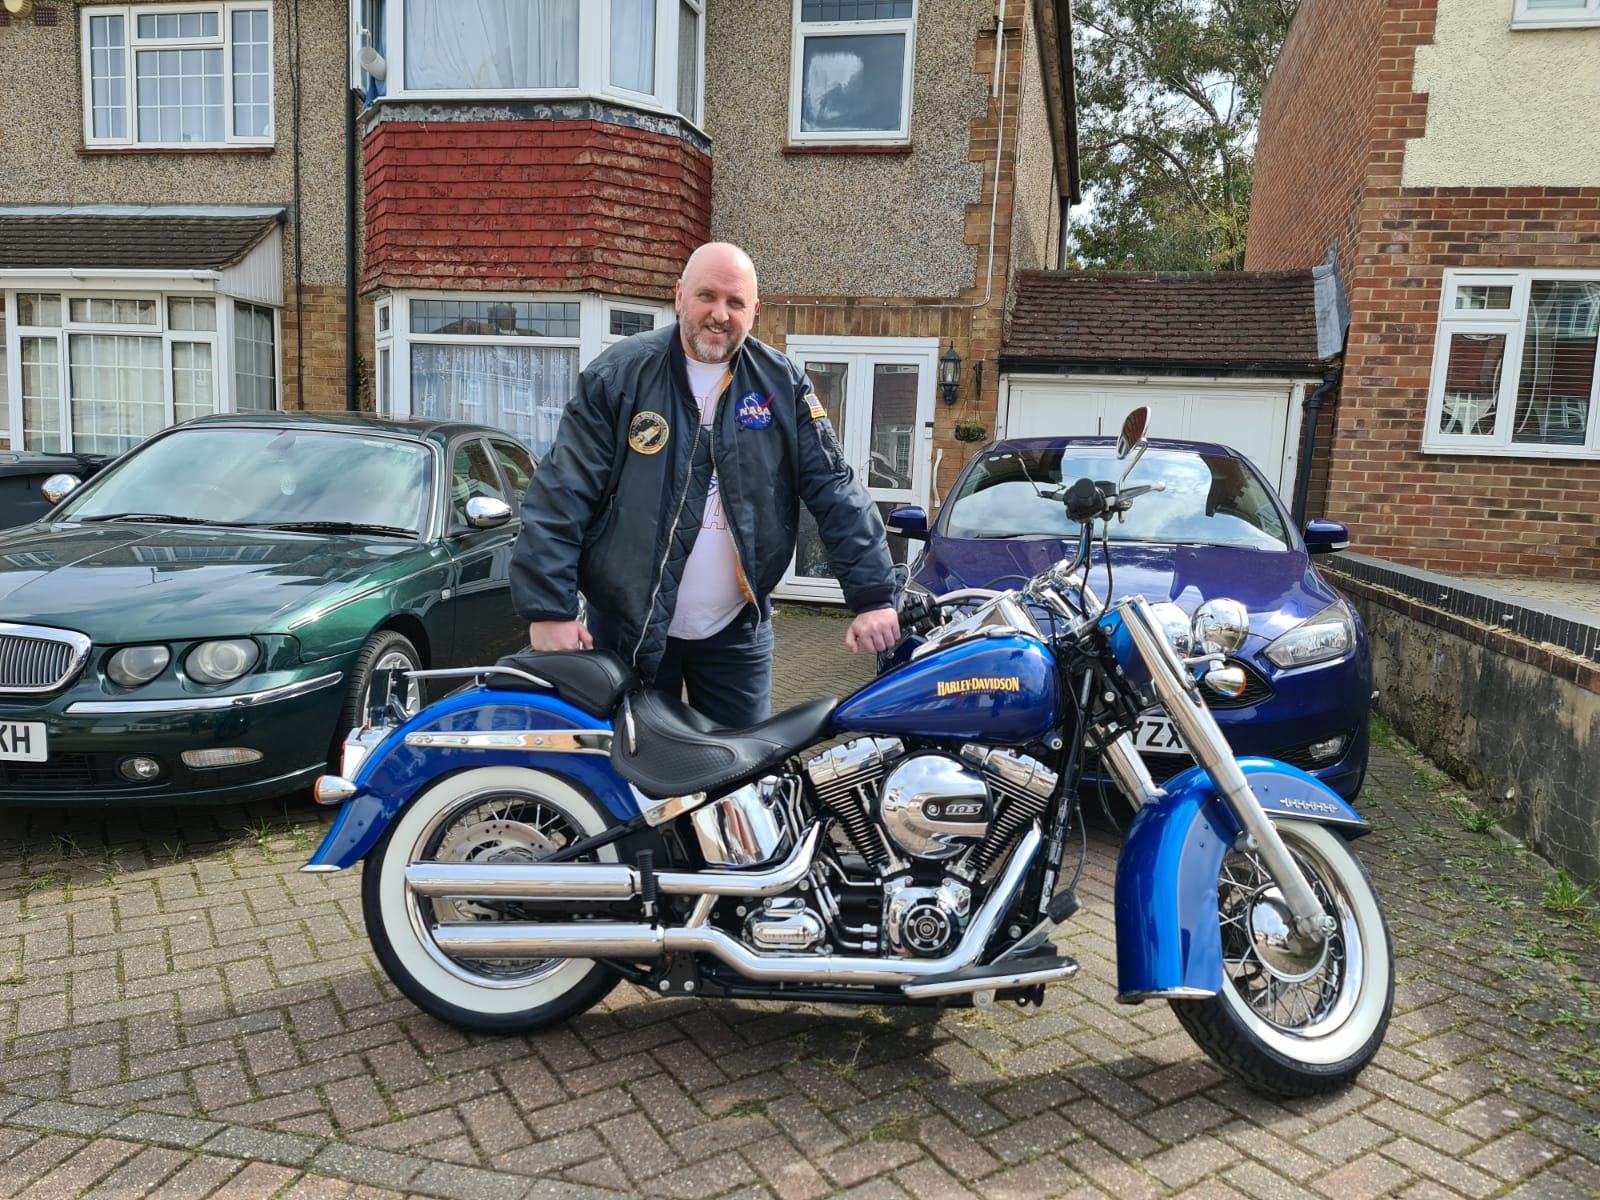 Winner Anthony Macdonald-Heaney of a  2018 Harley Davidson Softail Softail Deluxe - 22nd March